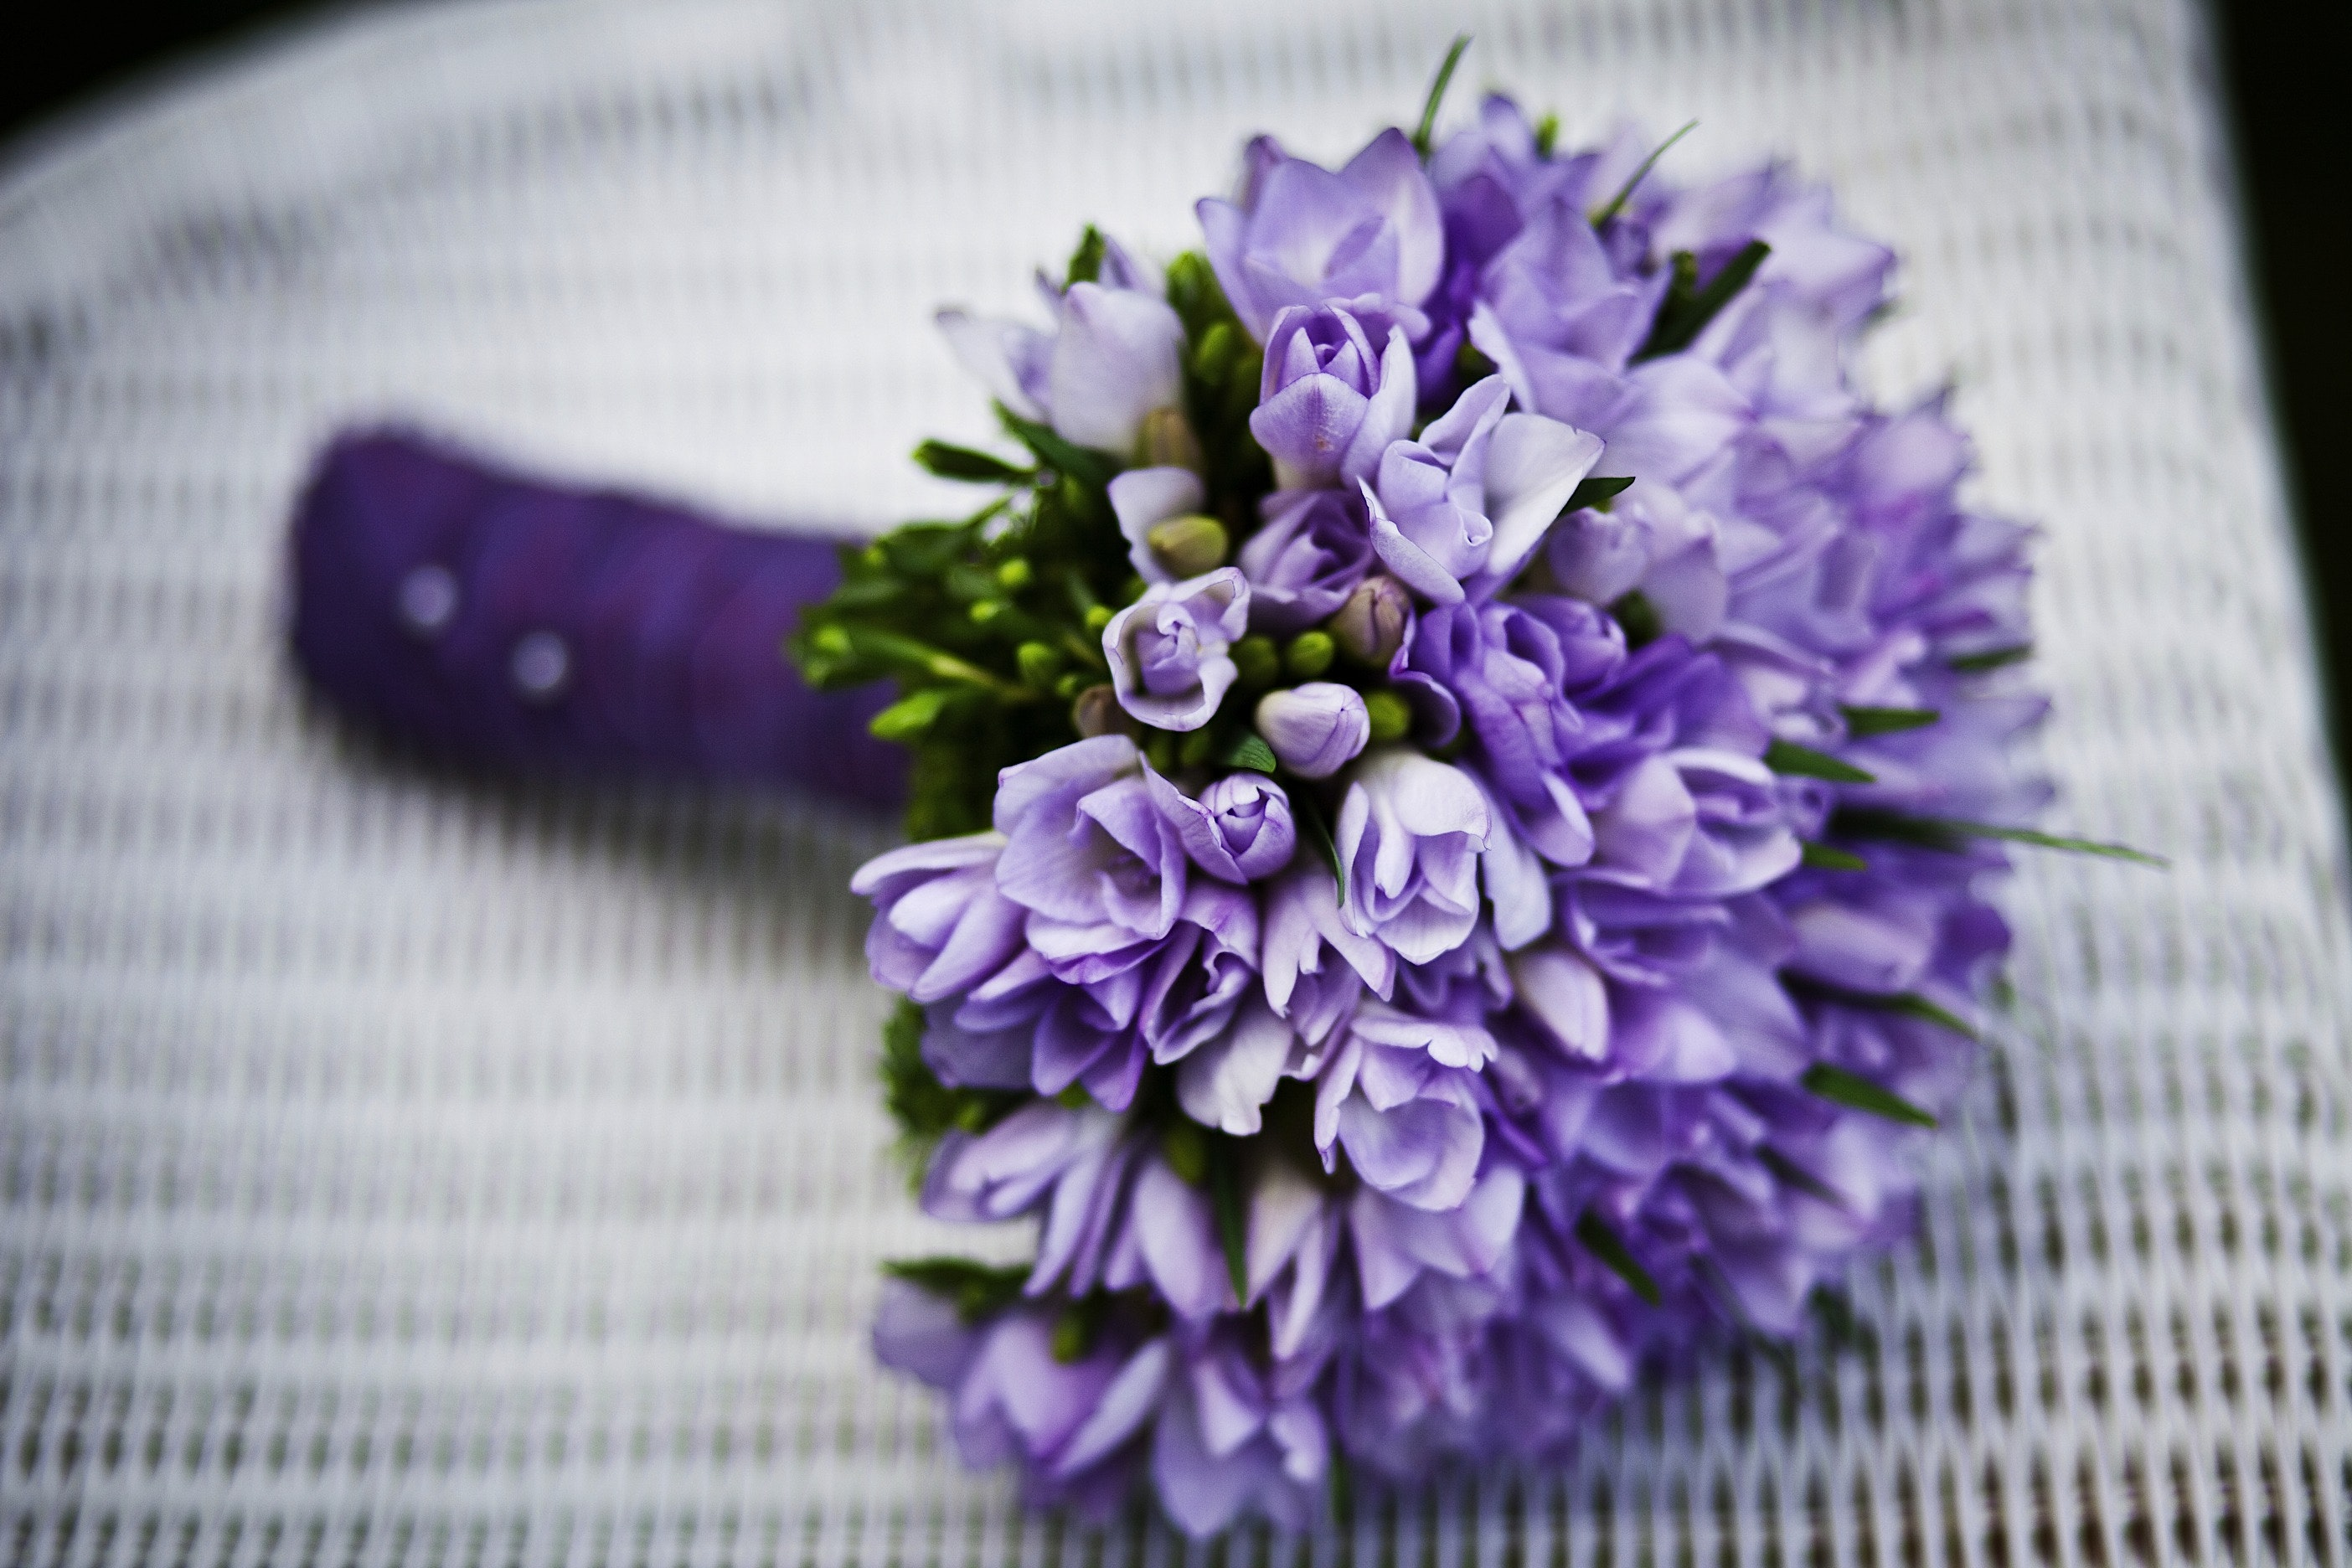 Purple flower bouquet on white woven chair free stock photo free download izmirmasajfo Images